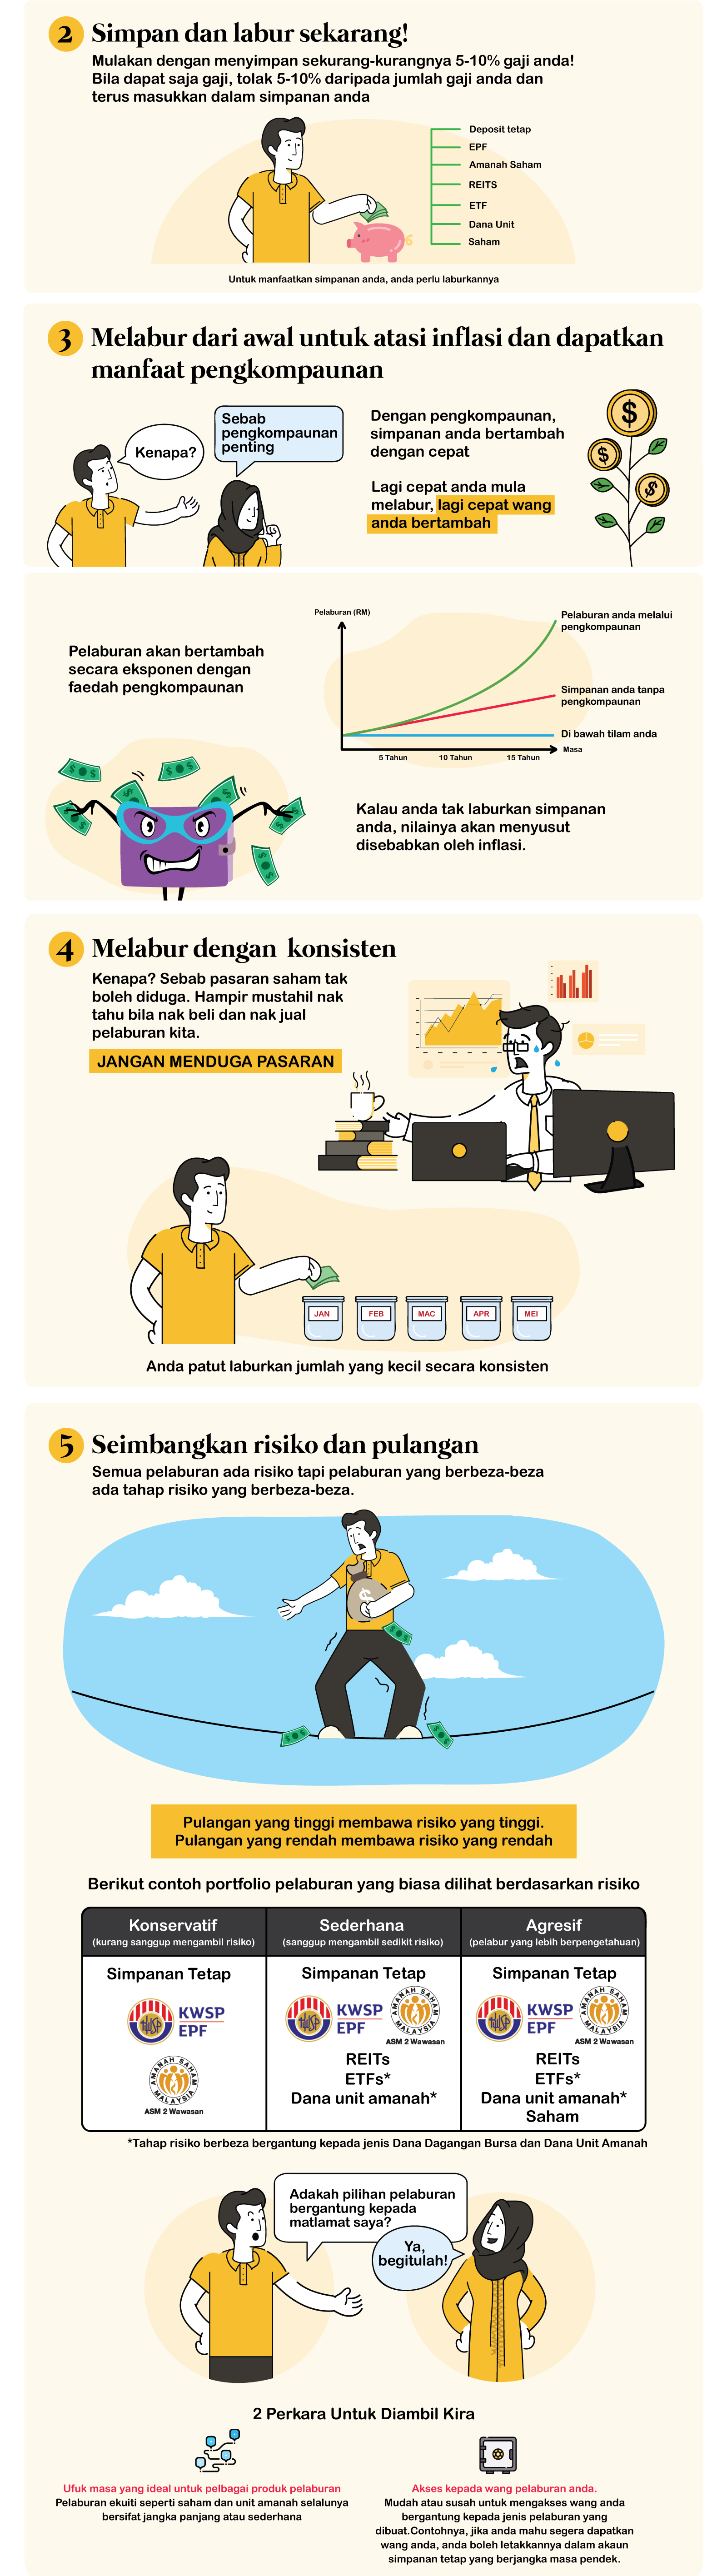 Infographic 5 - Multiply -